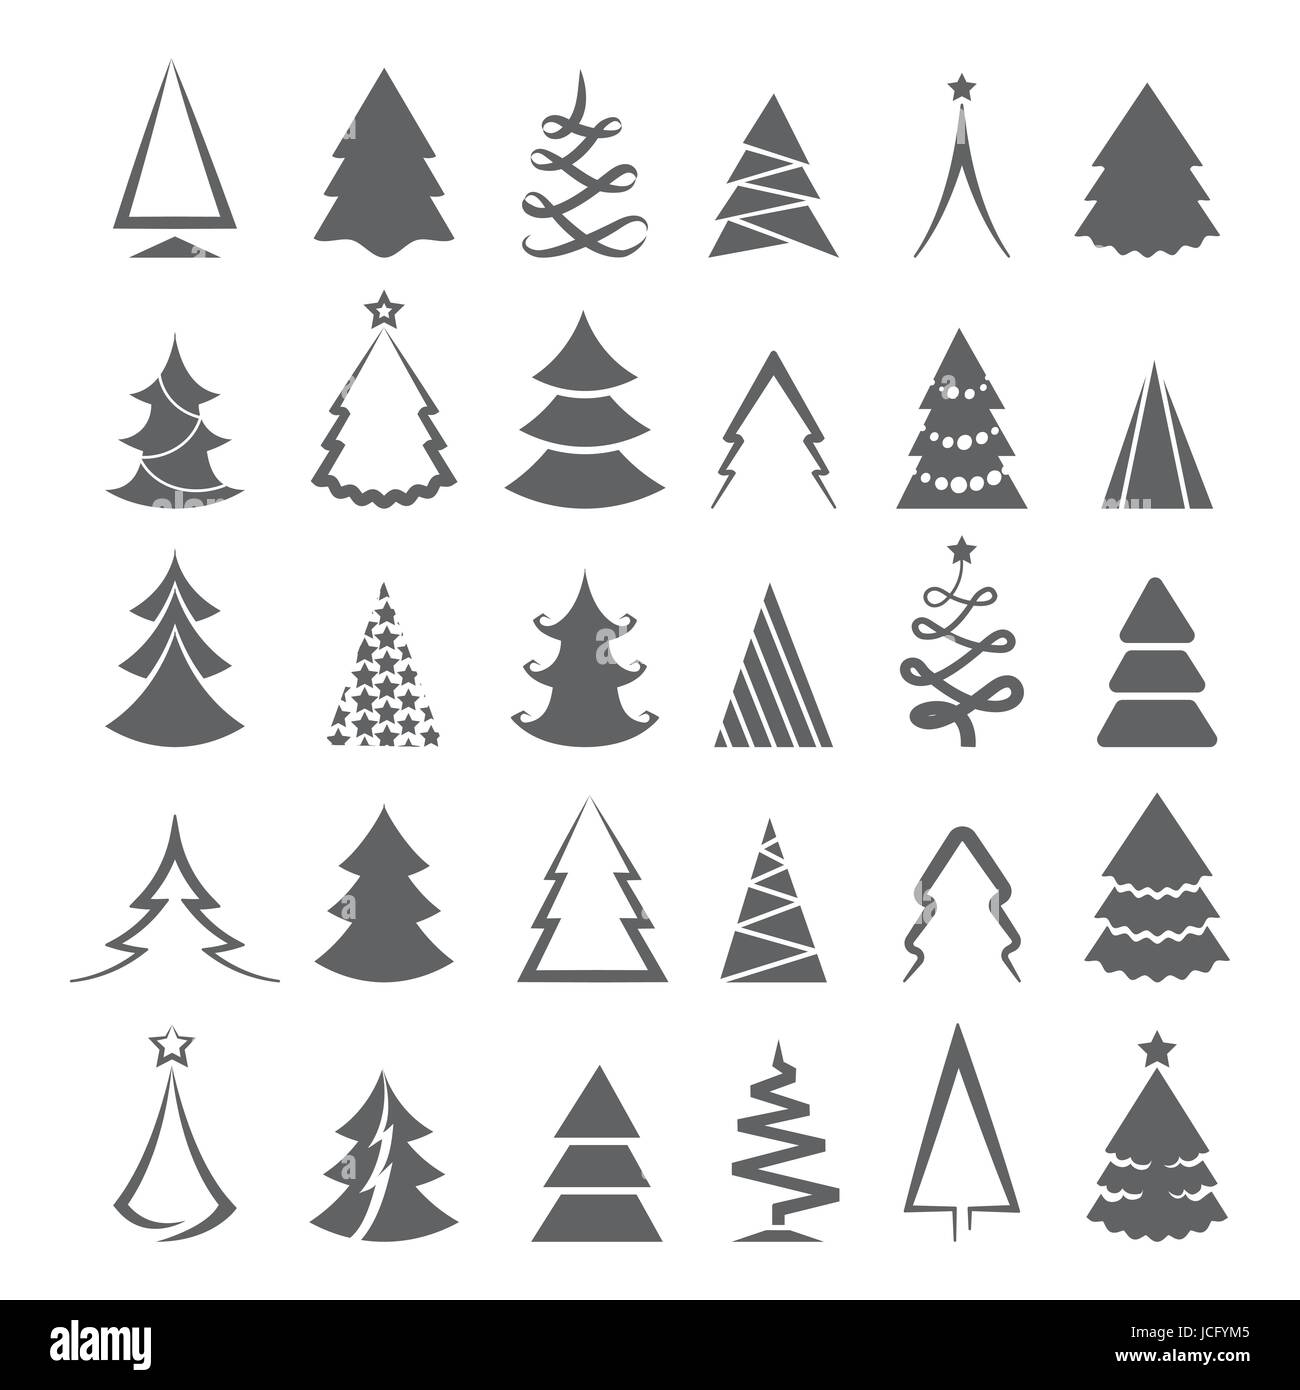 Simple christmas tree icons isolated on white background